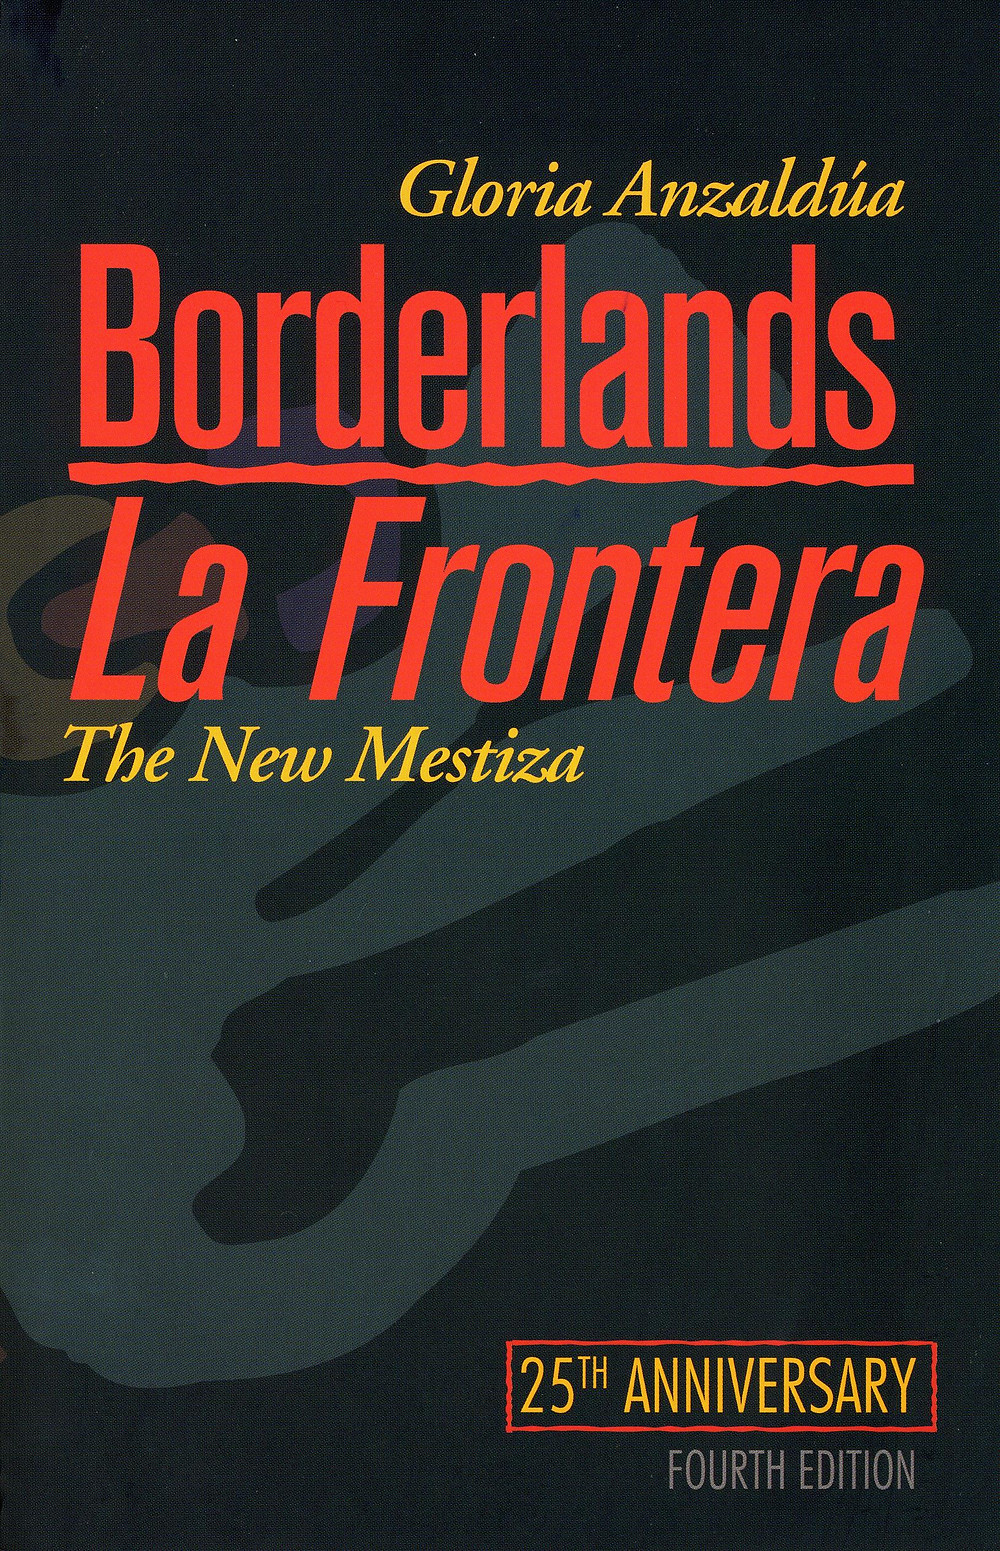 "Borderlands/La Frontera: The New Mestiza, Fourth Edition Gloria Anzaldua (Author) The Book Slut book reviews, Description: Literary Nonfiction. Poetry. Latino/Latina Studies. LGBT Studies. Fourth Edition. Rooted in Gloria Anzaldúa's experience as a Chicana, a lesbian, an activist, and a writer, the essays and poems in this volume profoundly challenged, and continue to challenge, how we think about identity. BORDERLANDS/LA FRONTERA remaps our understanding of what a ""border"" is, presenting it not as a simple divide between here and there, us and them, but as a psychic, social, and cultural terrain that we inhabit, and that inhabits all of us.  This twenty-fifth anniversary edition features a new introduction by scholars Norma Cantú (University of Texas at San Antonio) and Aída Hurtado (University of California at Santa Cruz) as well as a revised critical bibliography.  ""The emotional and intellectual impact of the book is disorienting and powerful...all languages are spoken, and survival depends on understanding all modes of thought. In the borderlands new creatures come into being. Anzaldúa celebrates this 'new mestiza' in bold, experimental writing.""--The Village Voice  ""Anzaldúa's pulsating weaving of innovative poetry with sparse informative prose brings us deep into the insider/outsider consciousness of the borderlands; that ancient and contemporary, crashing and blending world that divides and unites America.""--Women's Review of Books. thebookslut.com, bookslut, Publisher Aunt Lute Books Publish Date June 12, 2012 Pages 312 Dimensions 5.4 X 0.9 X 8.4 inches 